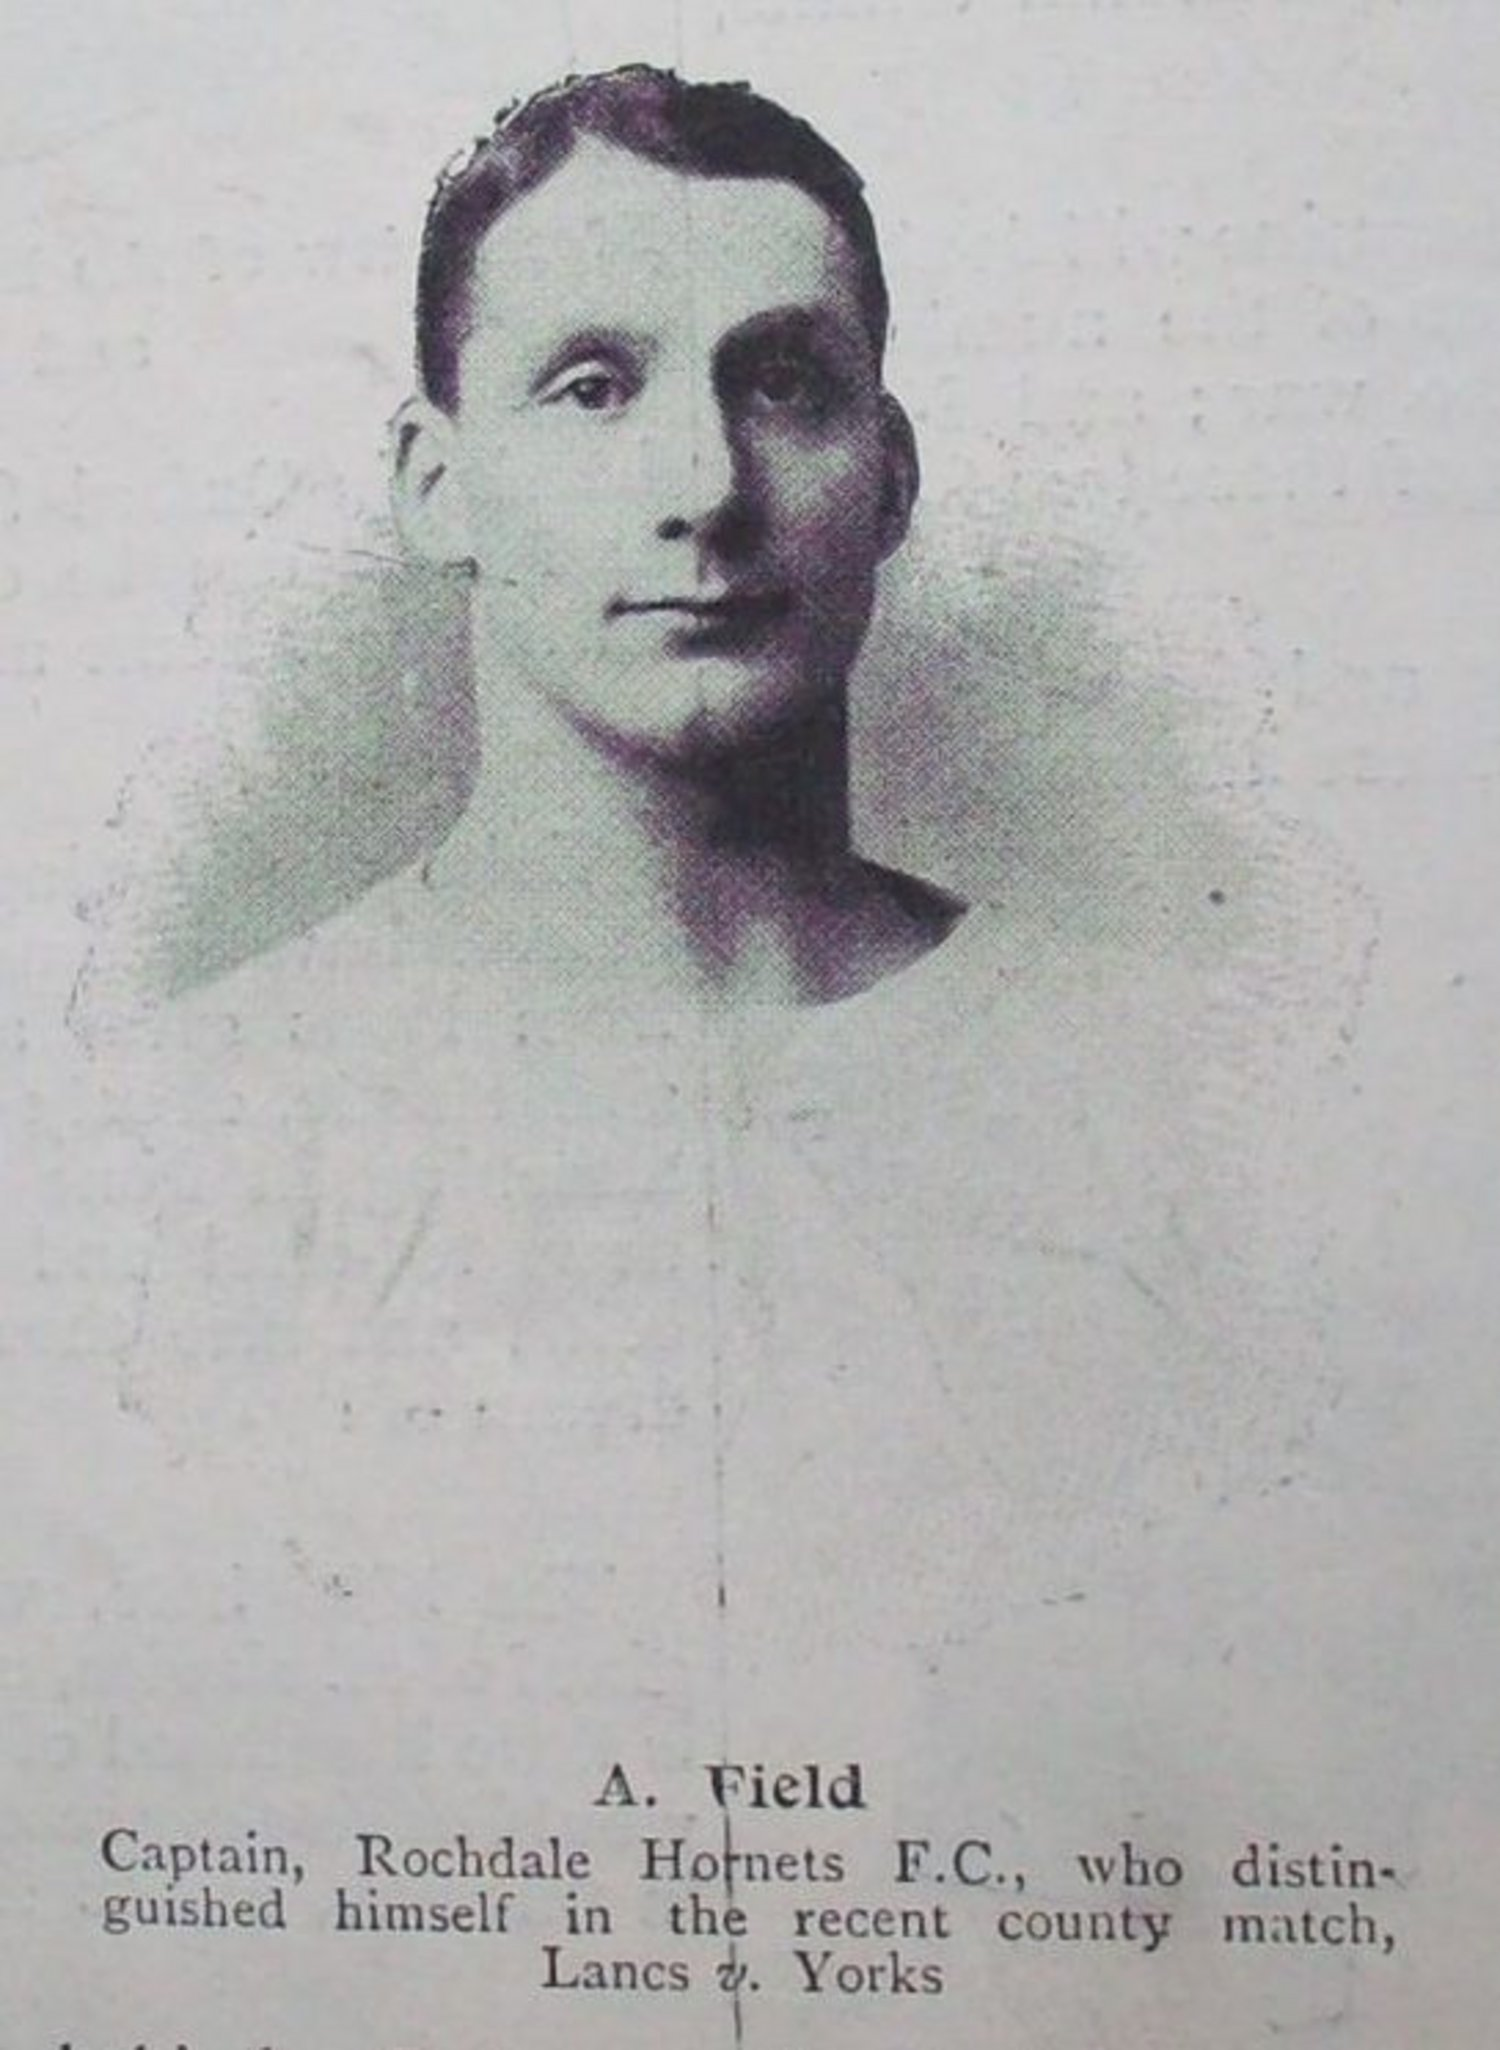 Archie Field also played for Rochdale Hornets